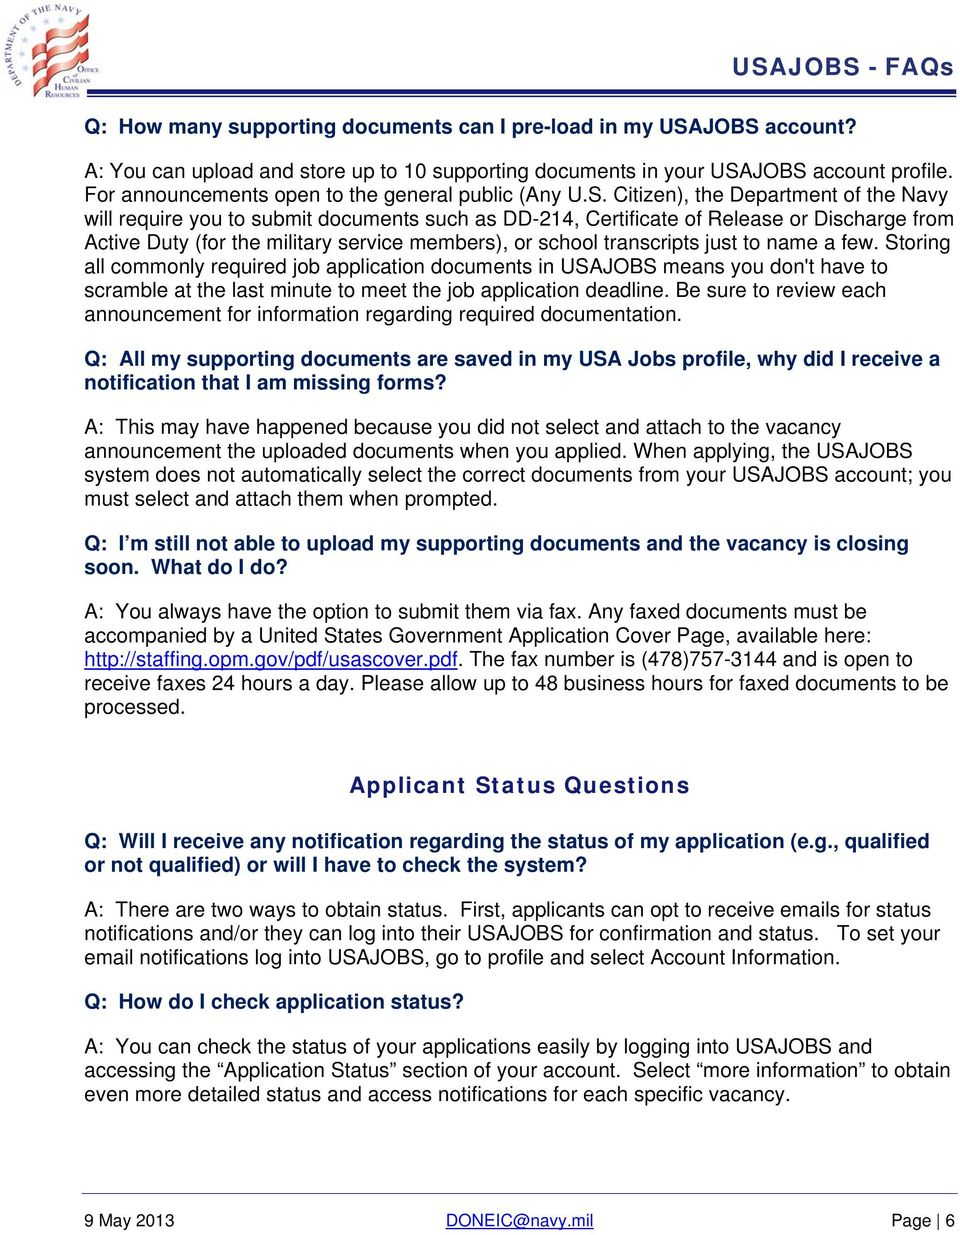 USAJOBS Applicant Frequently Asked Questions (FAQs) - PDF